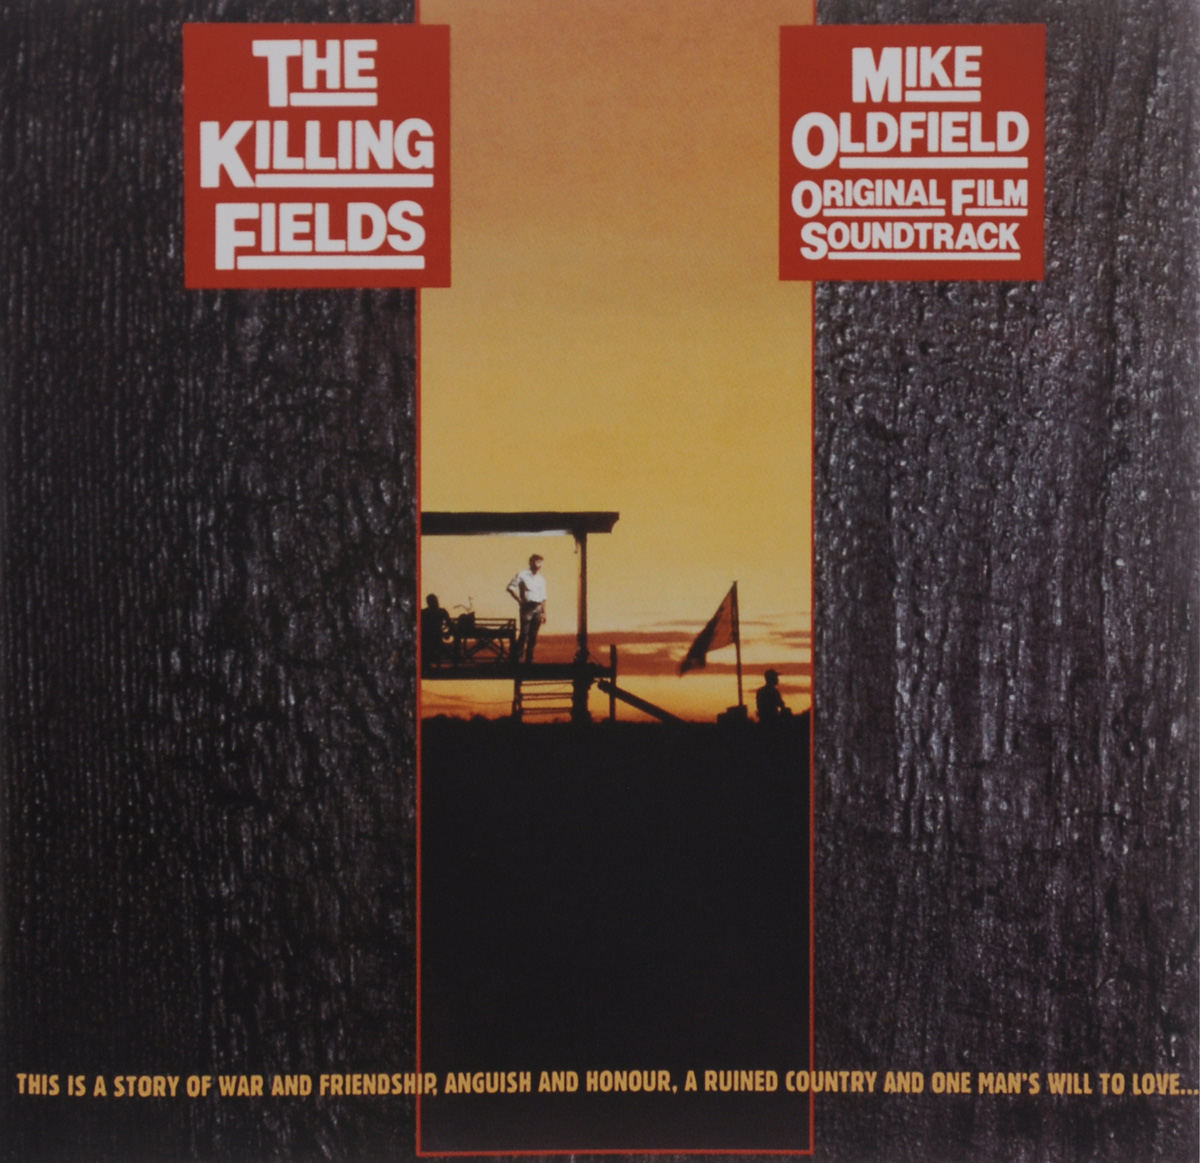 Mike Oldfield. The Killing Fields. Original Film Soundtrack